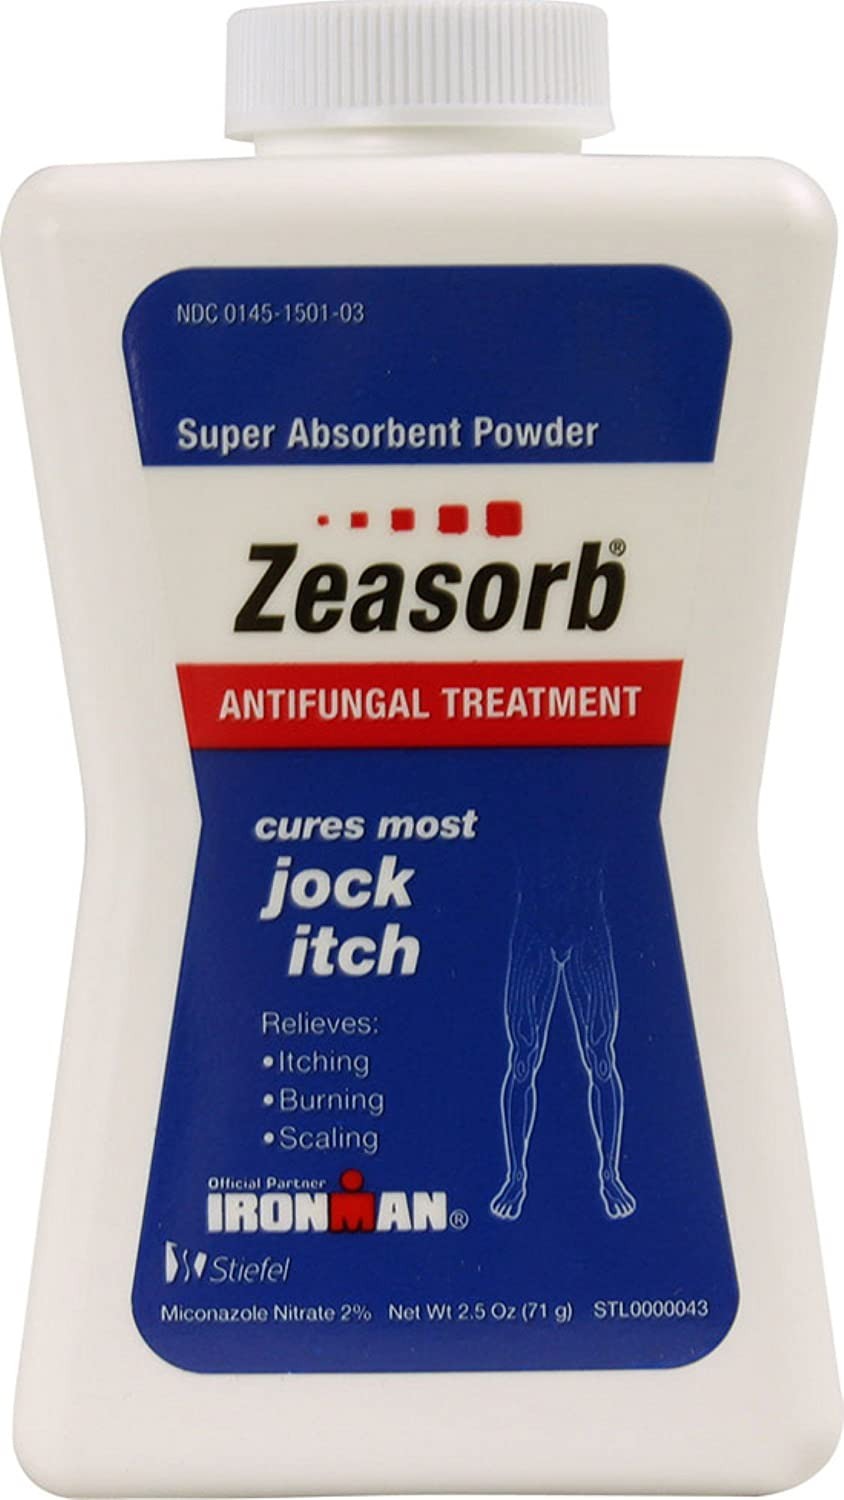 Zeasorb-AF Super Absorbent Antifungal Treatment Powder for Jock Itch 2.5 oz (Pack of 3): Health & Personal Care